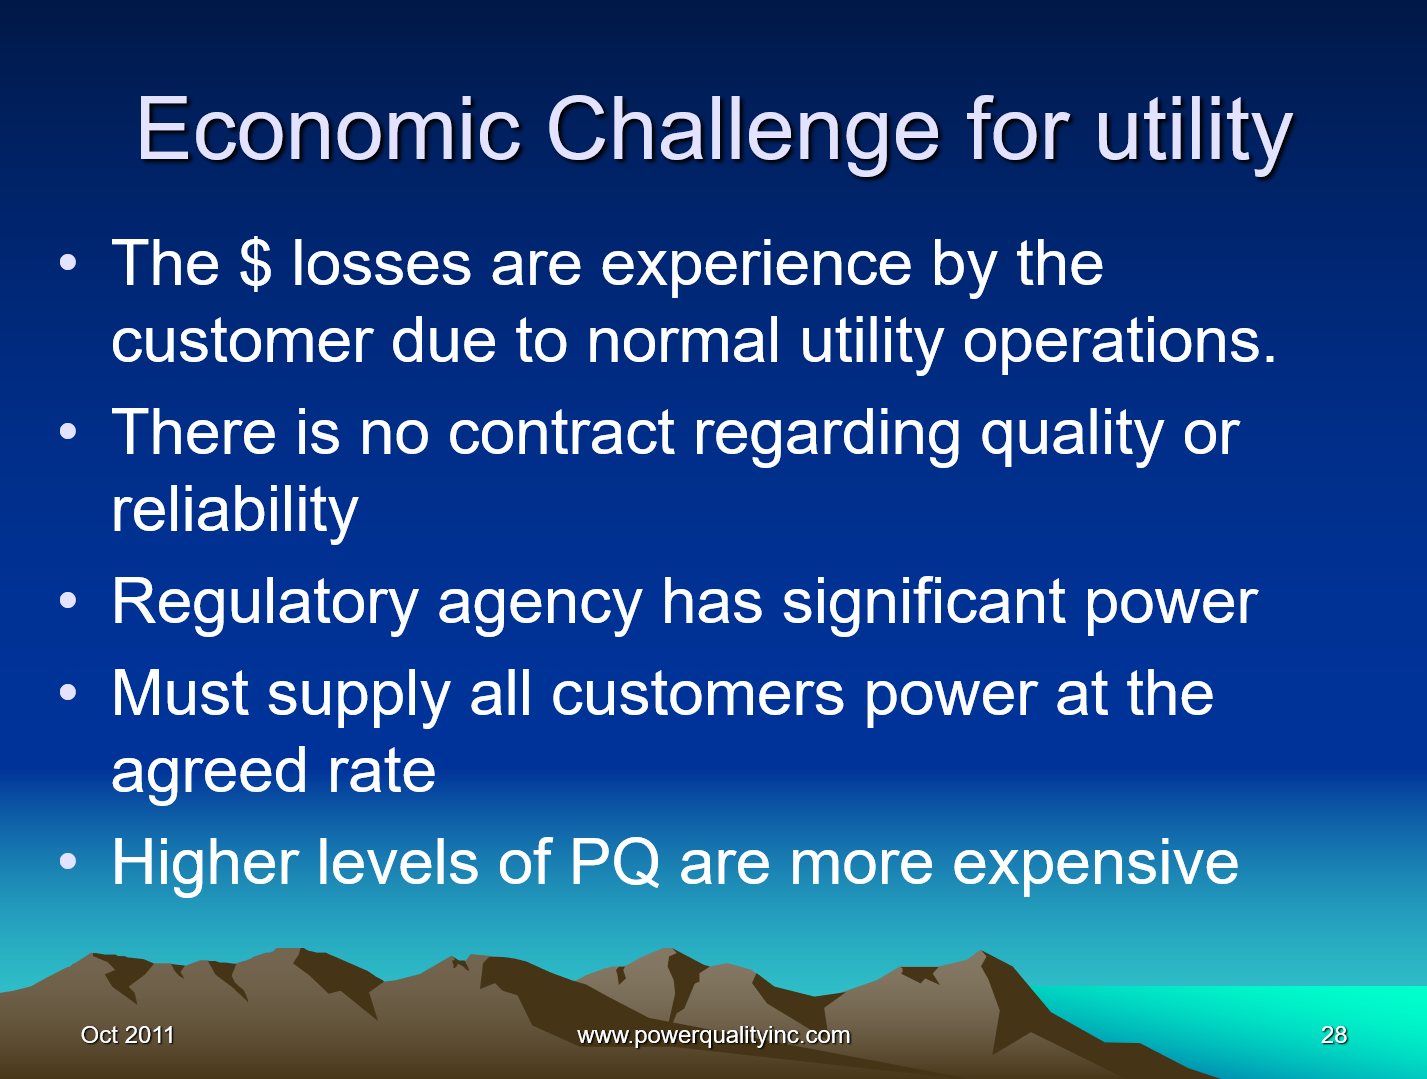 Power Quality the Economic Challenge for Utilities and Users_28